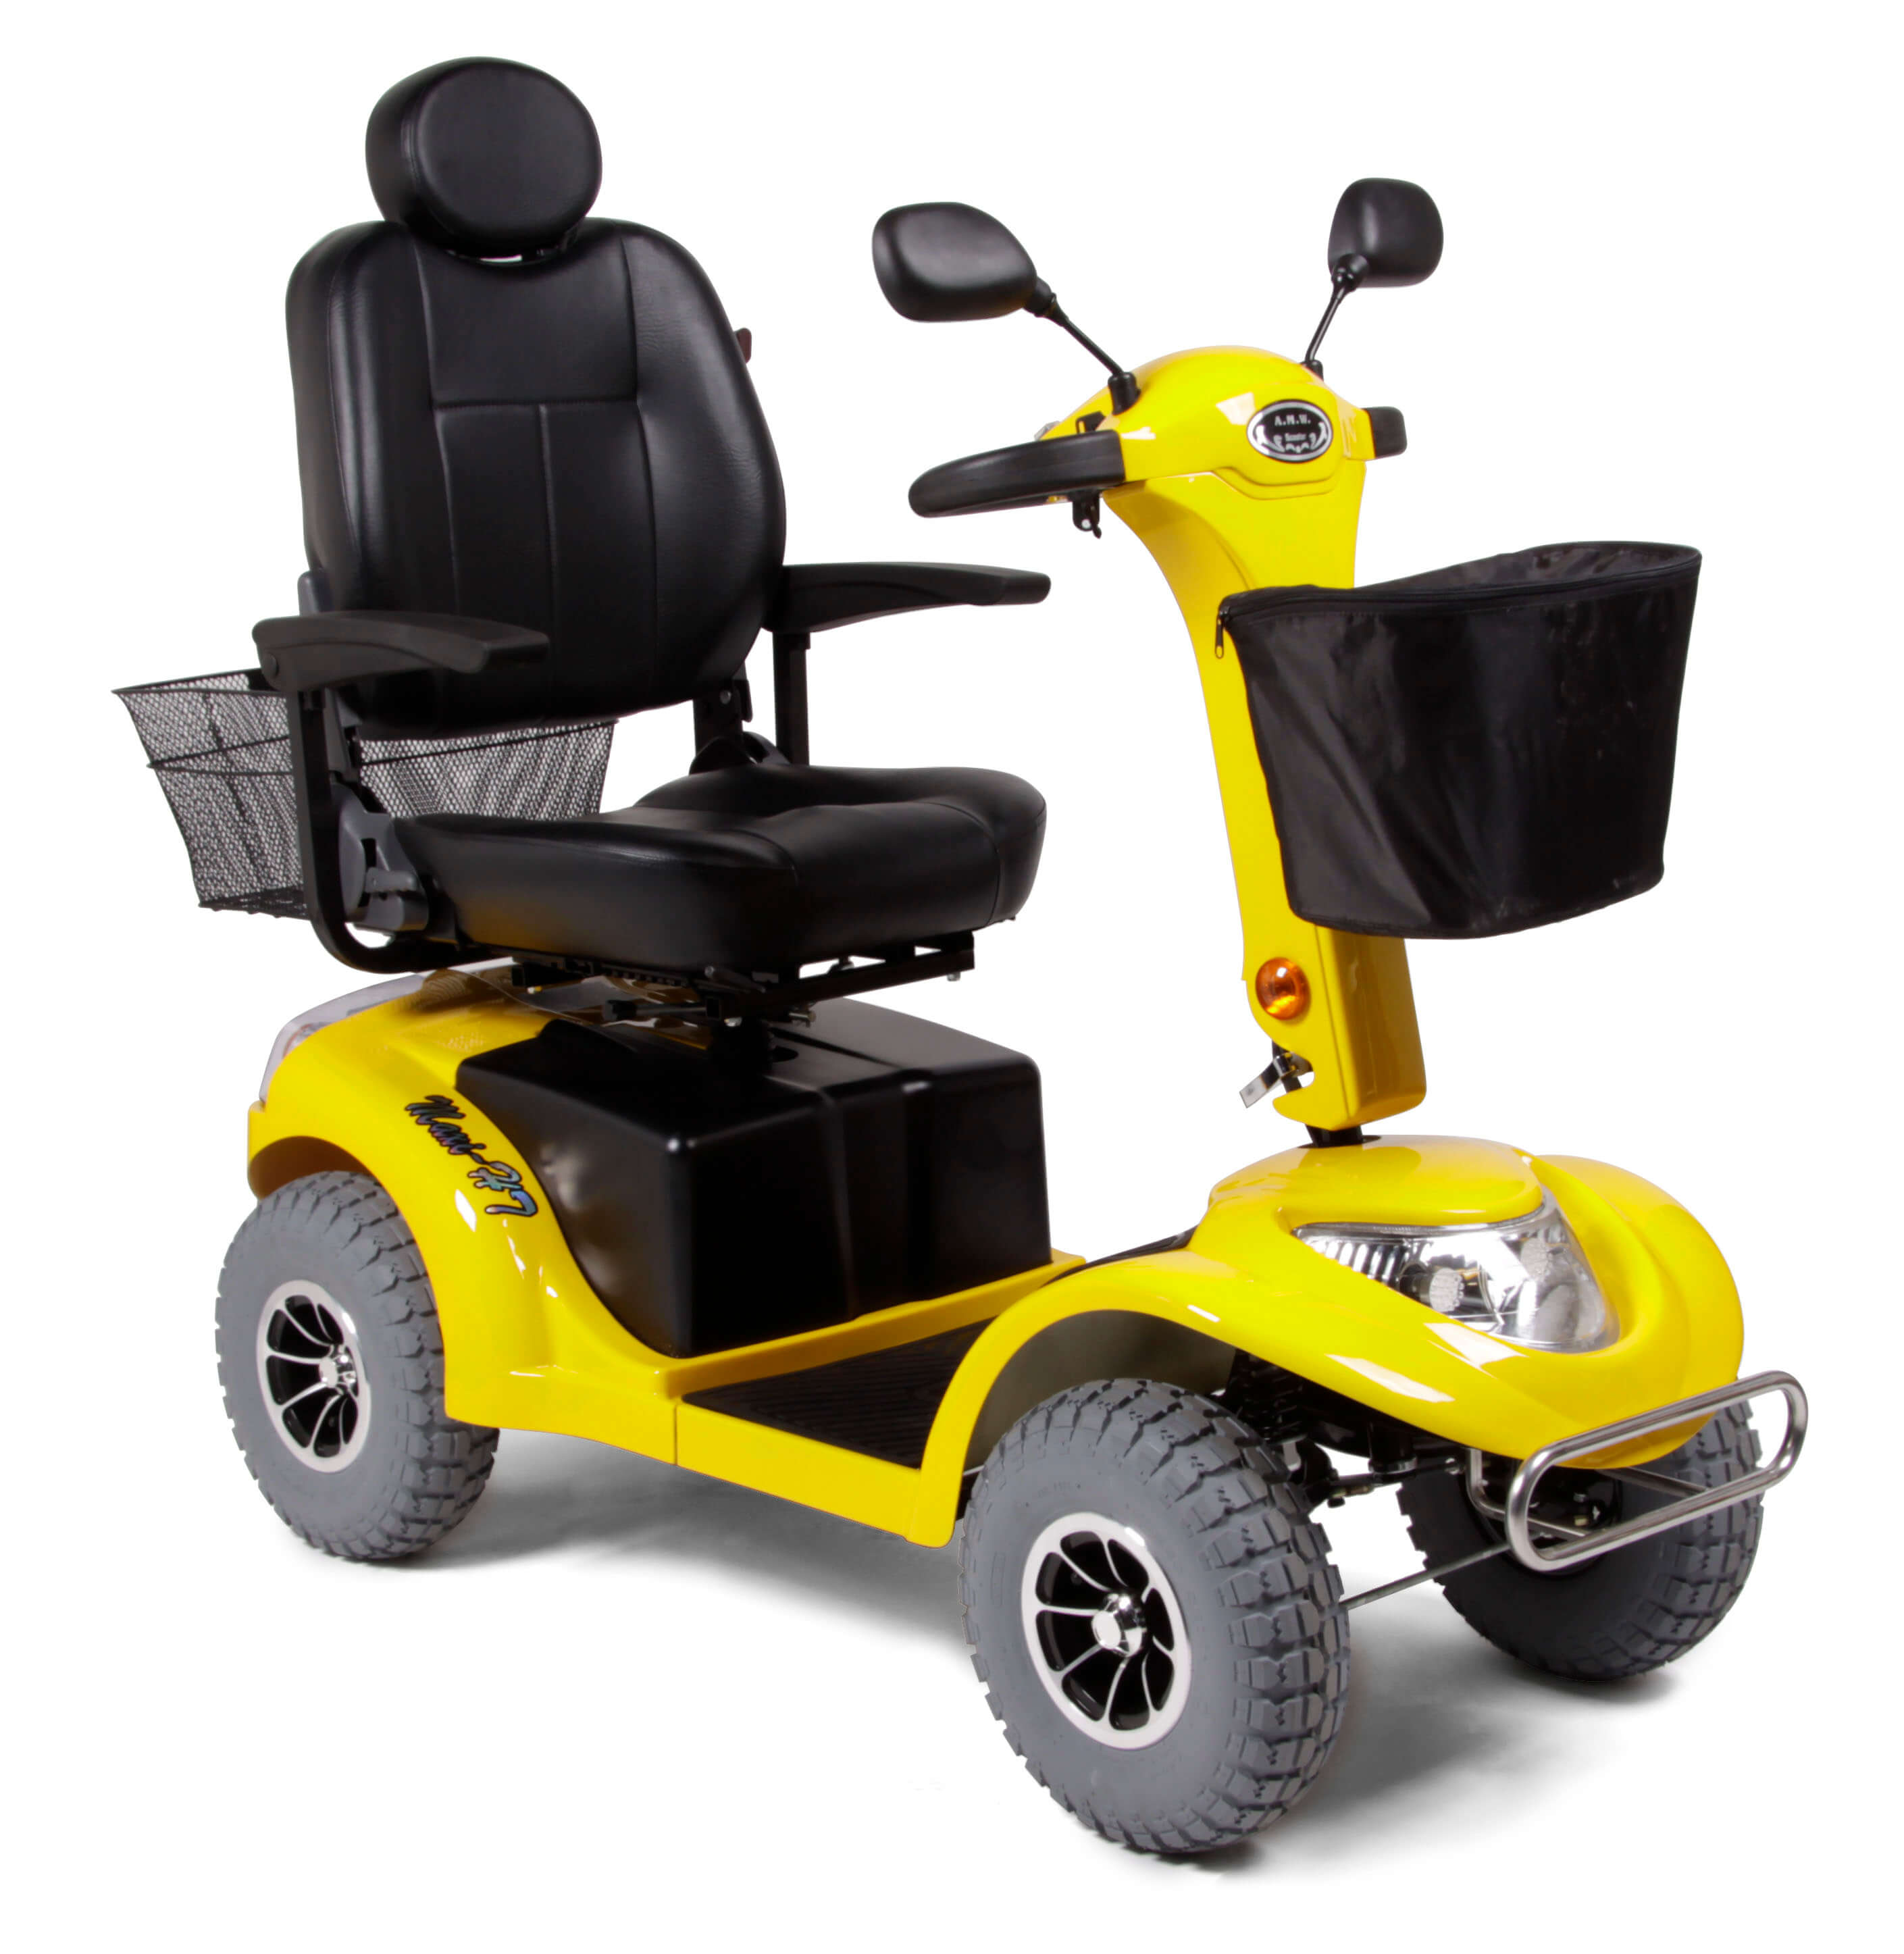 Maxi HT Mobility Scooter